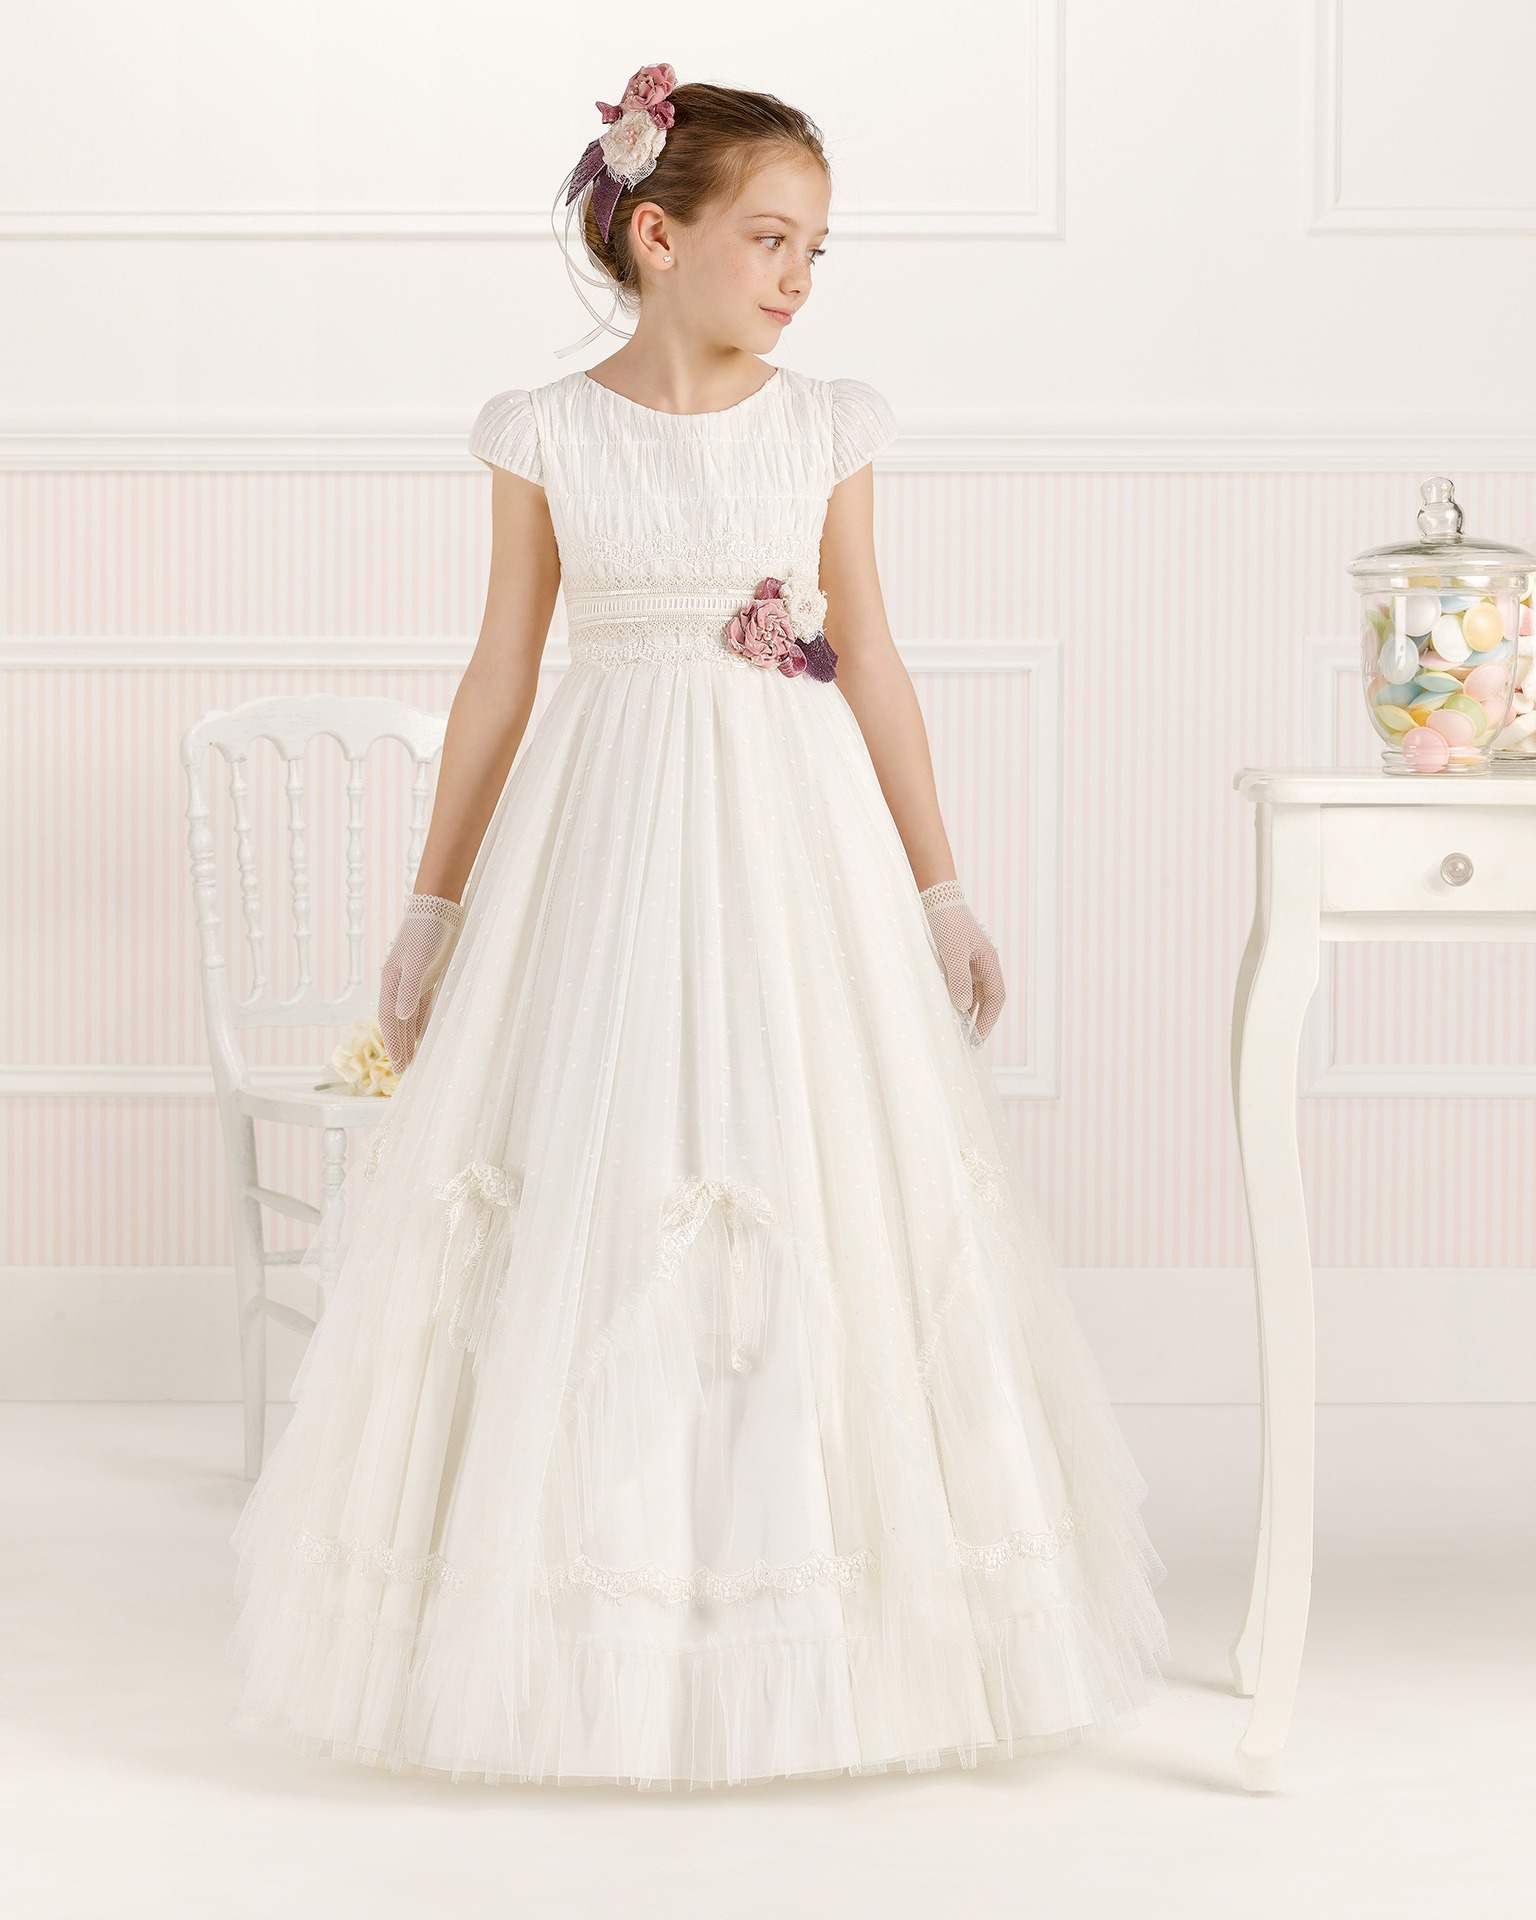 9O102 ballgown-style First Communion dress